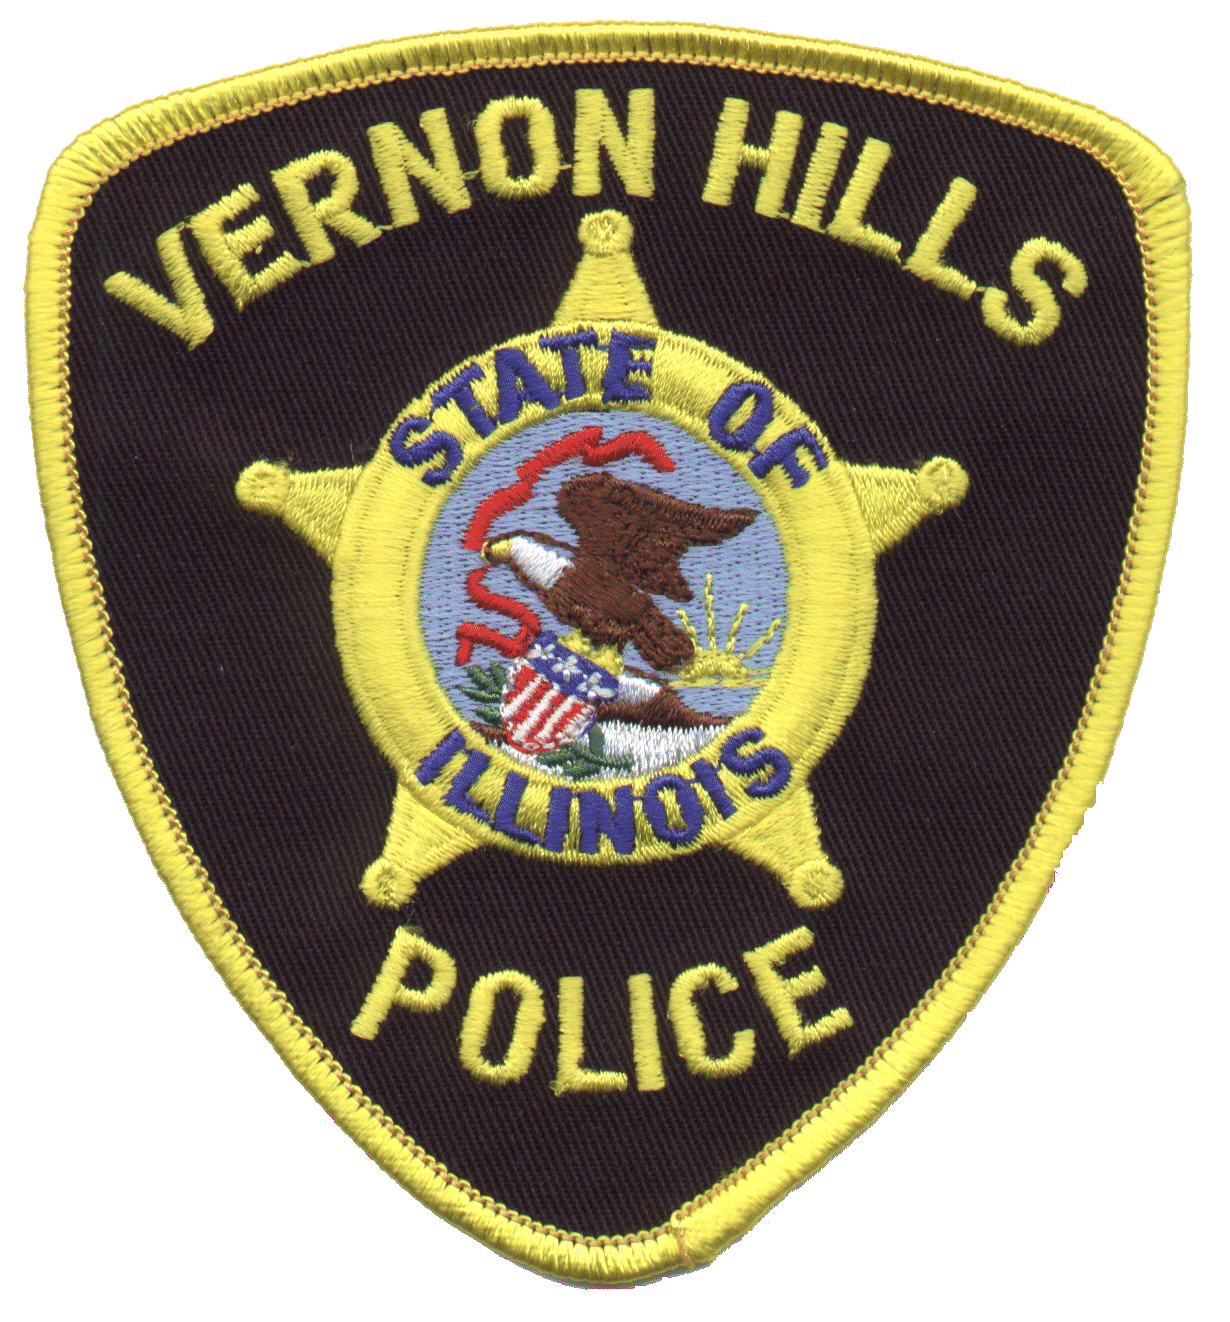 Vernon Hills Police Department | Vernon Hills, IL - Official Website